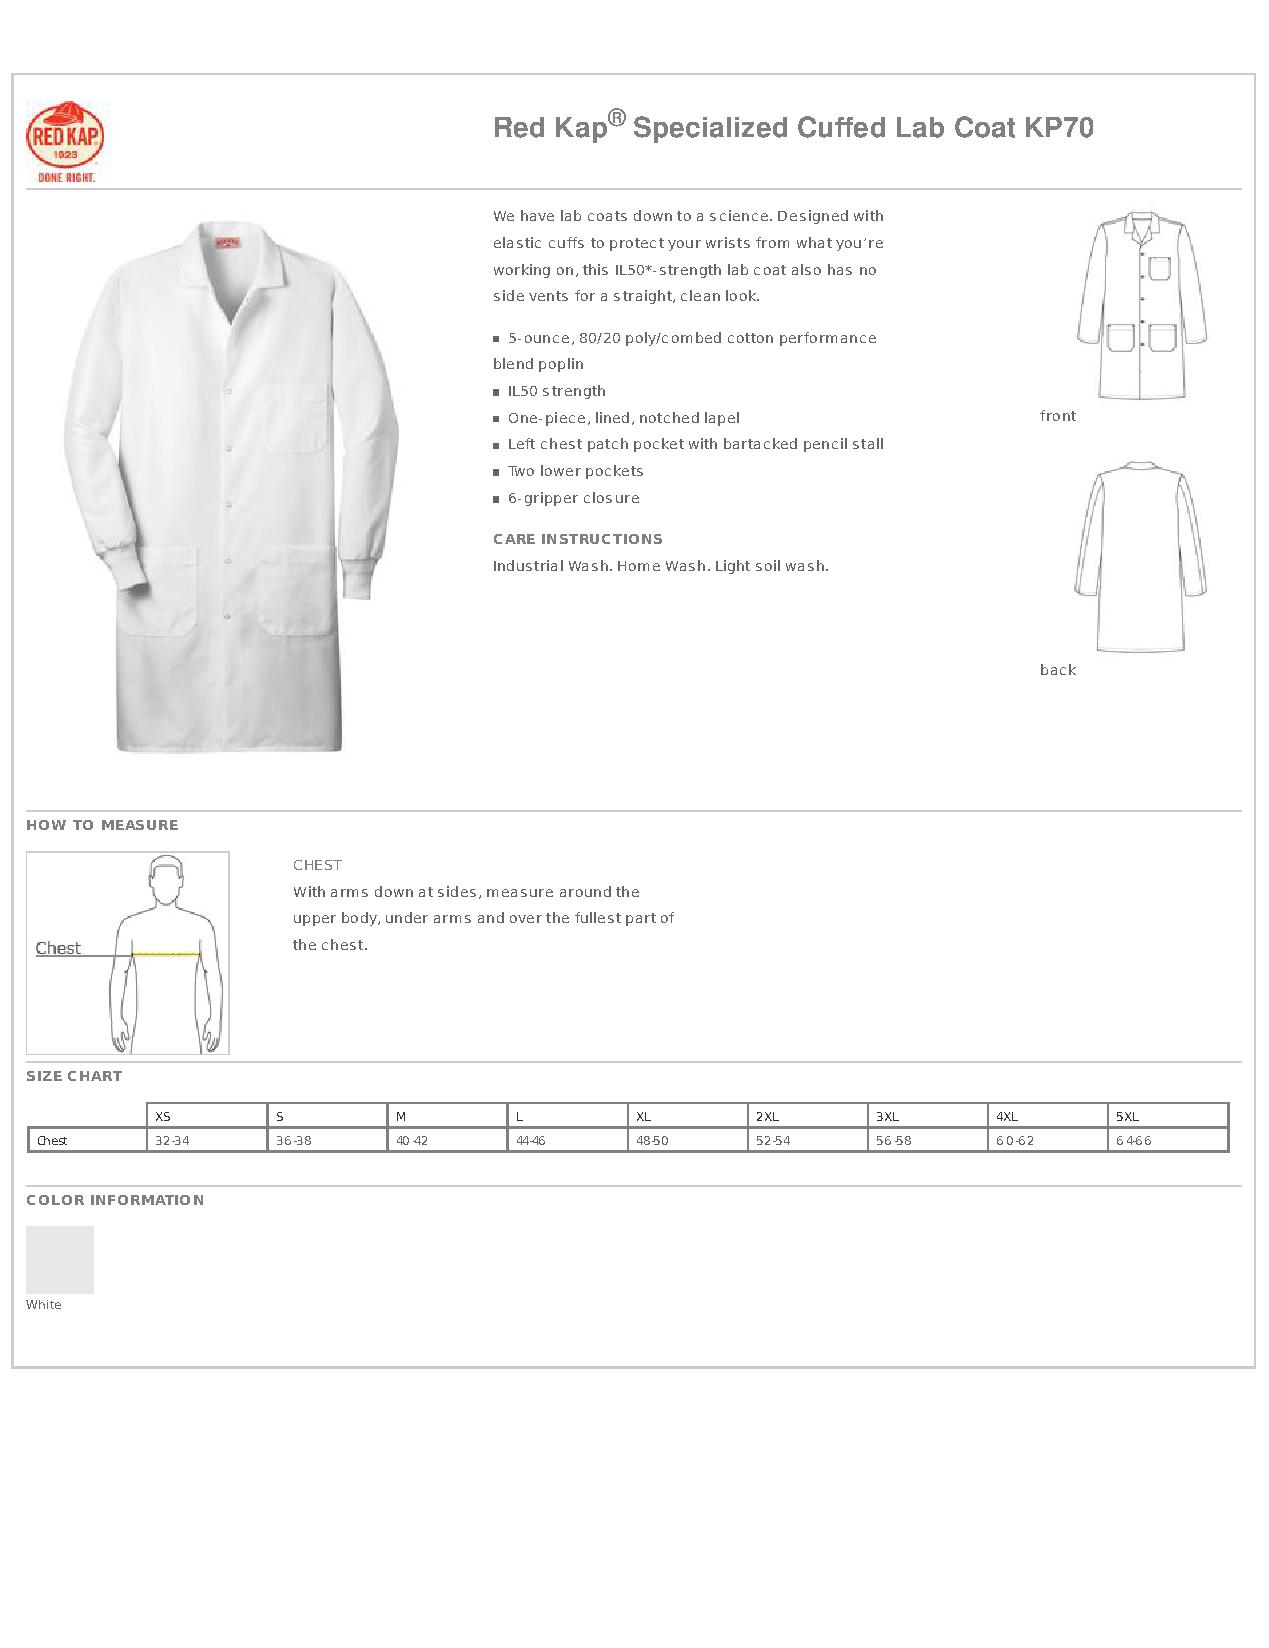 Red Kap Specialized Cuffed Lab Coat Kp70 Work Shirts